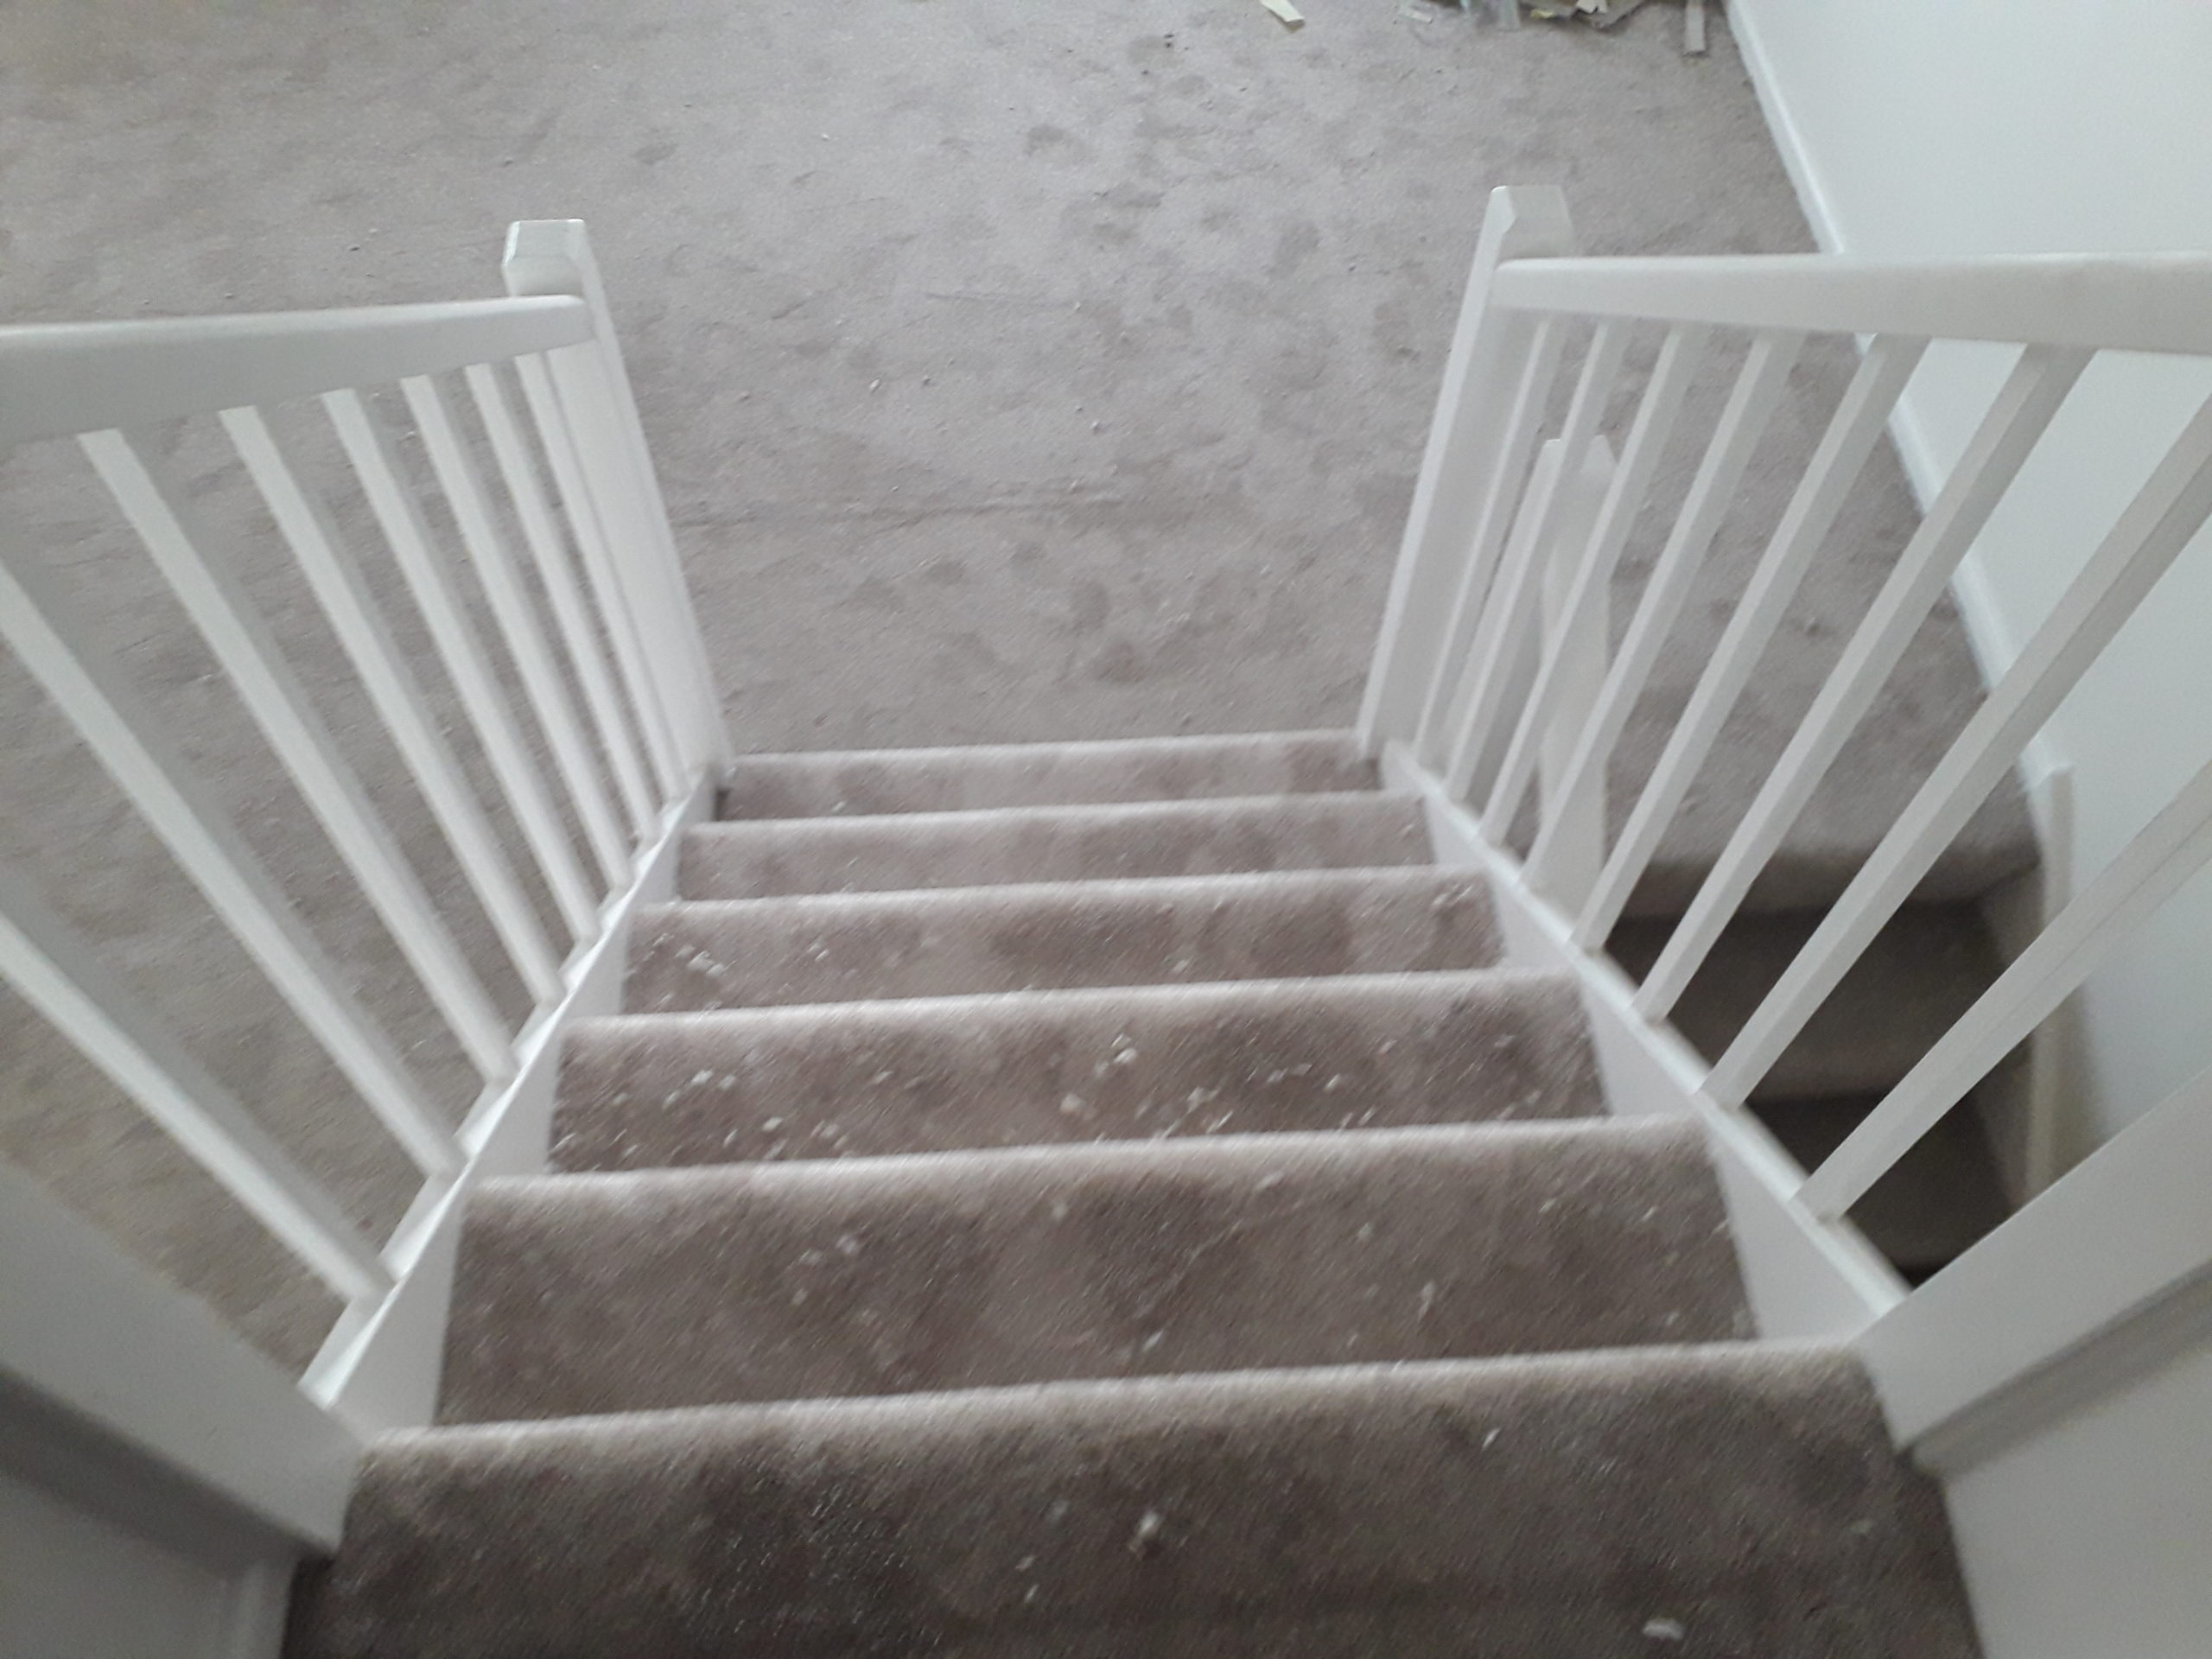 Stair and lounge carpet fitted in Portwrinkle near Torpoint. A nice grey Cormar carpet, one of the best carpet brands around.